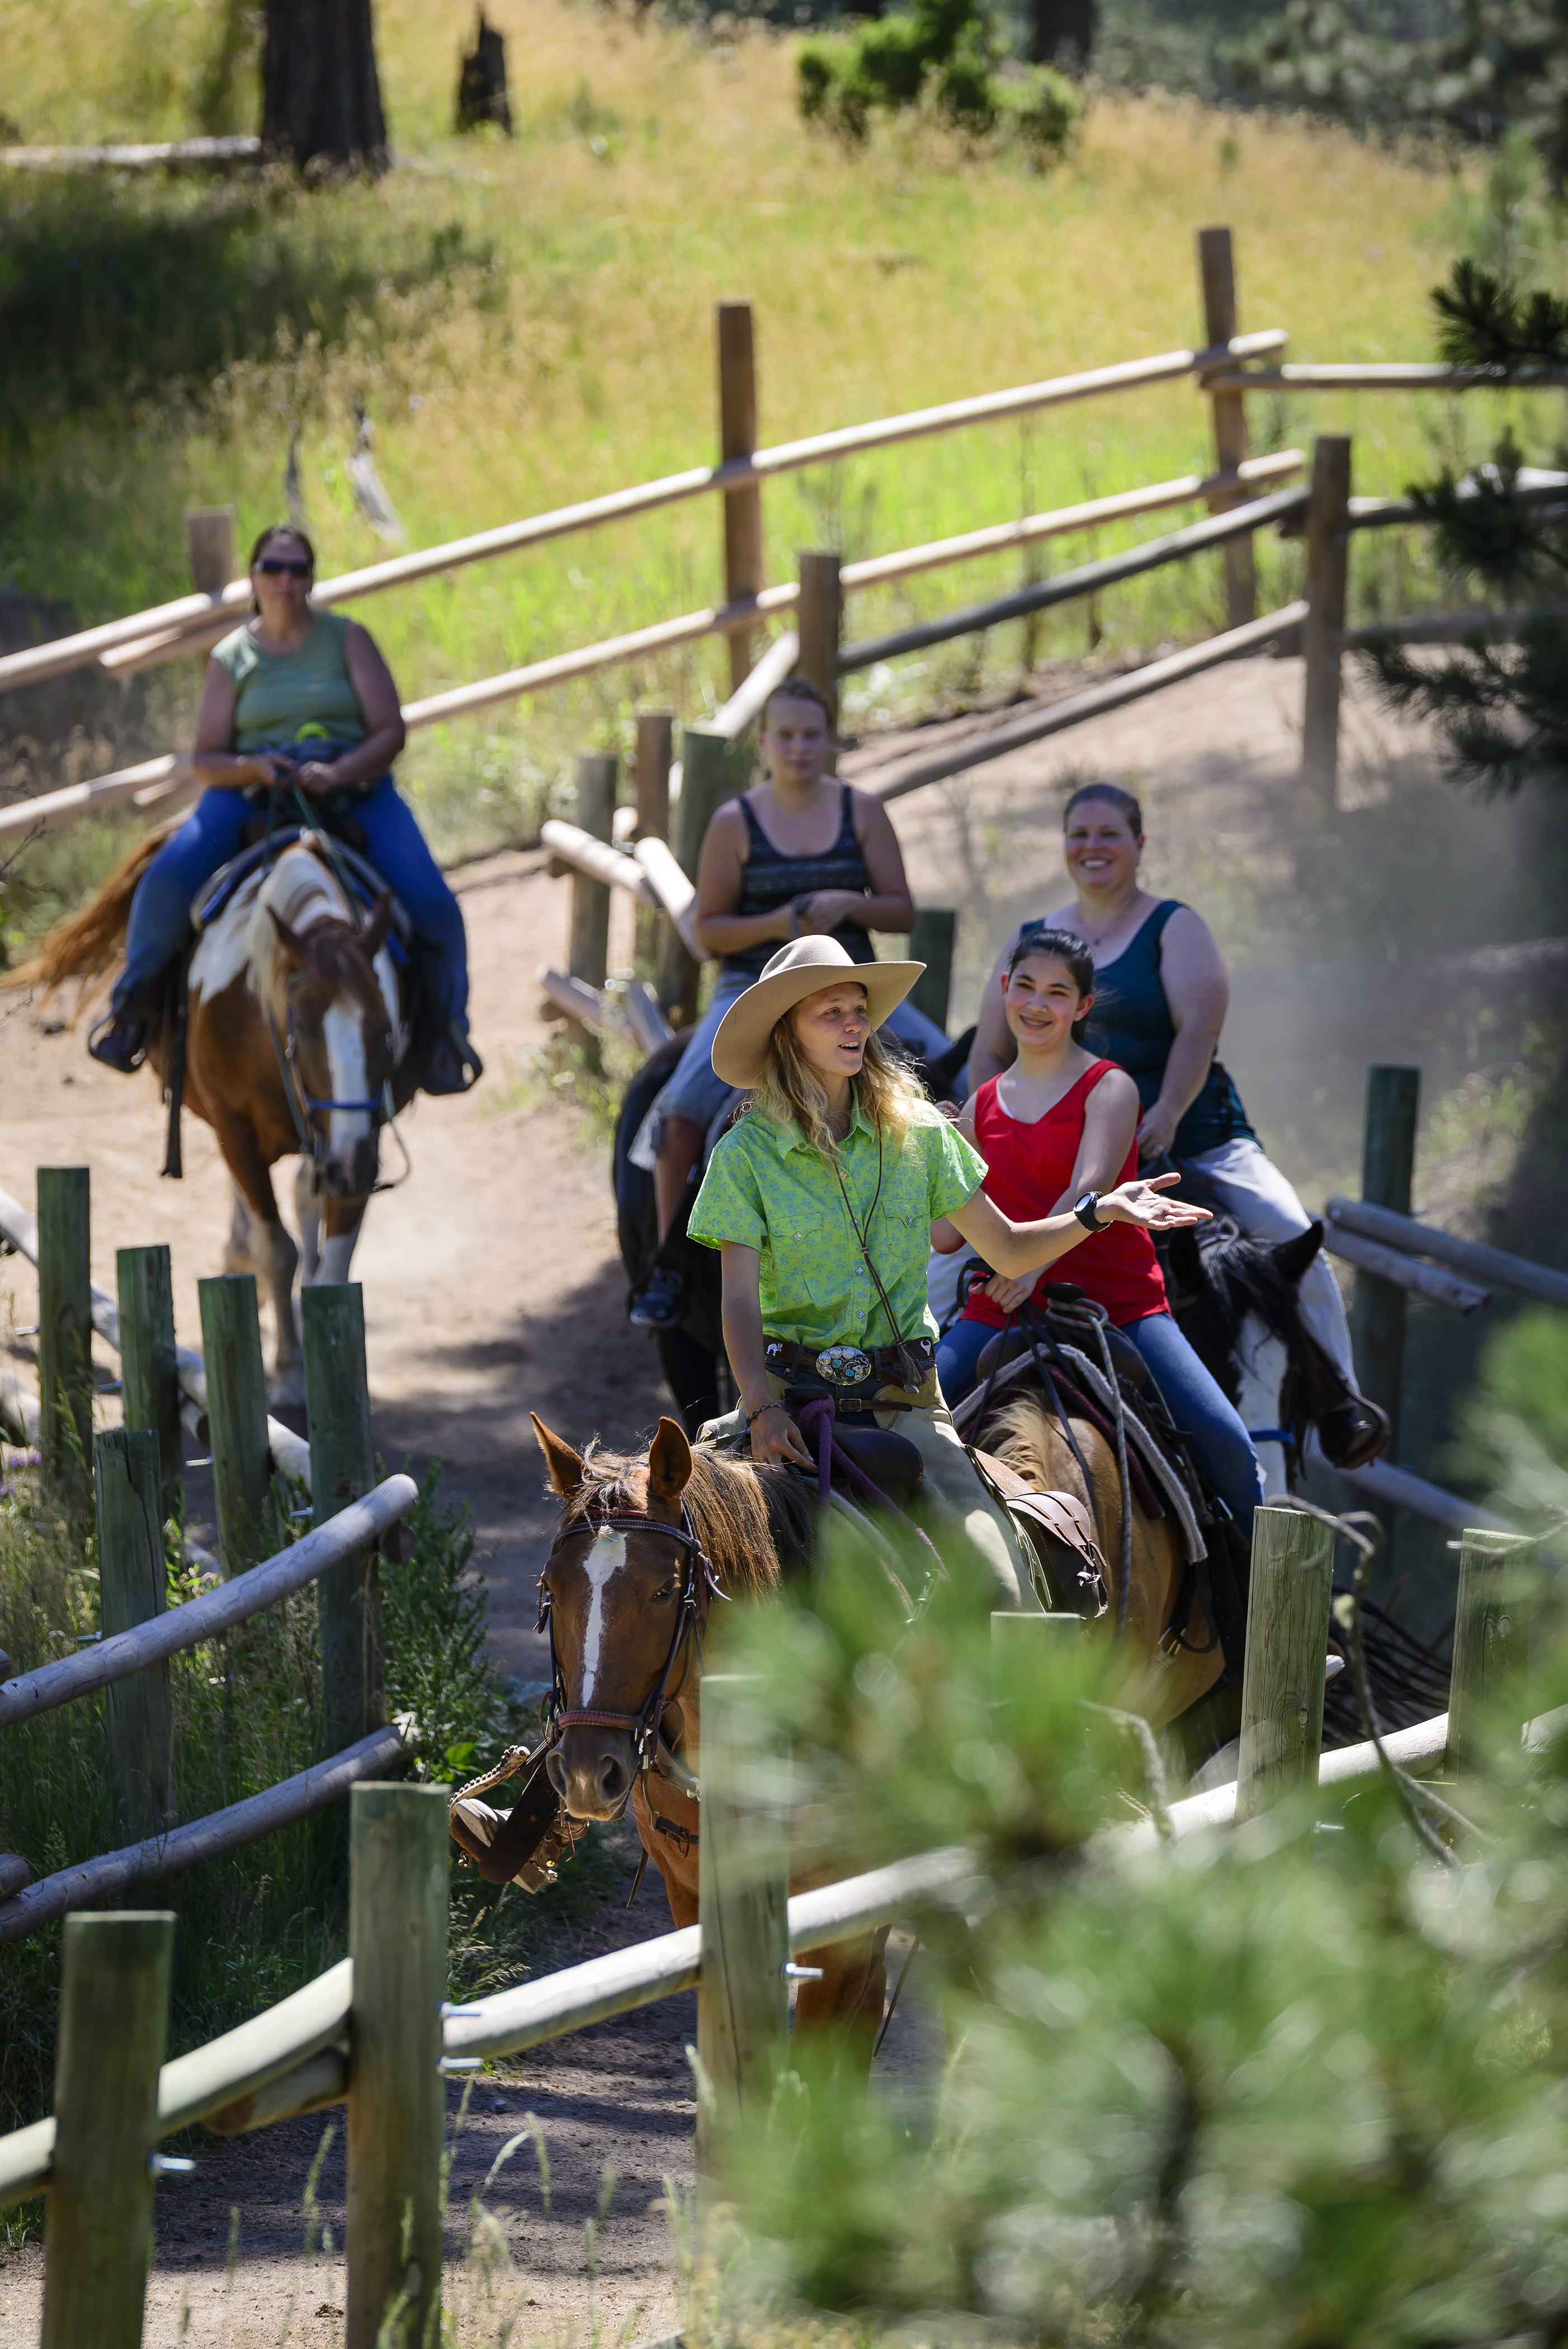 Group of people on horseback, riding on Palmer Gulch Trail in Custer State Park